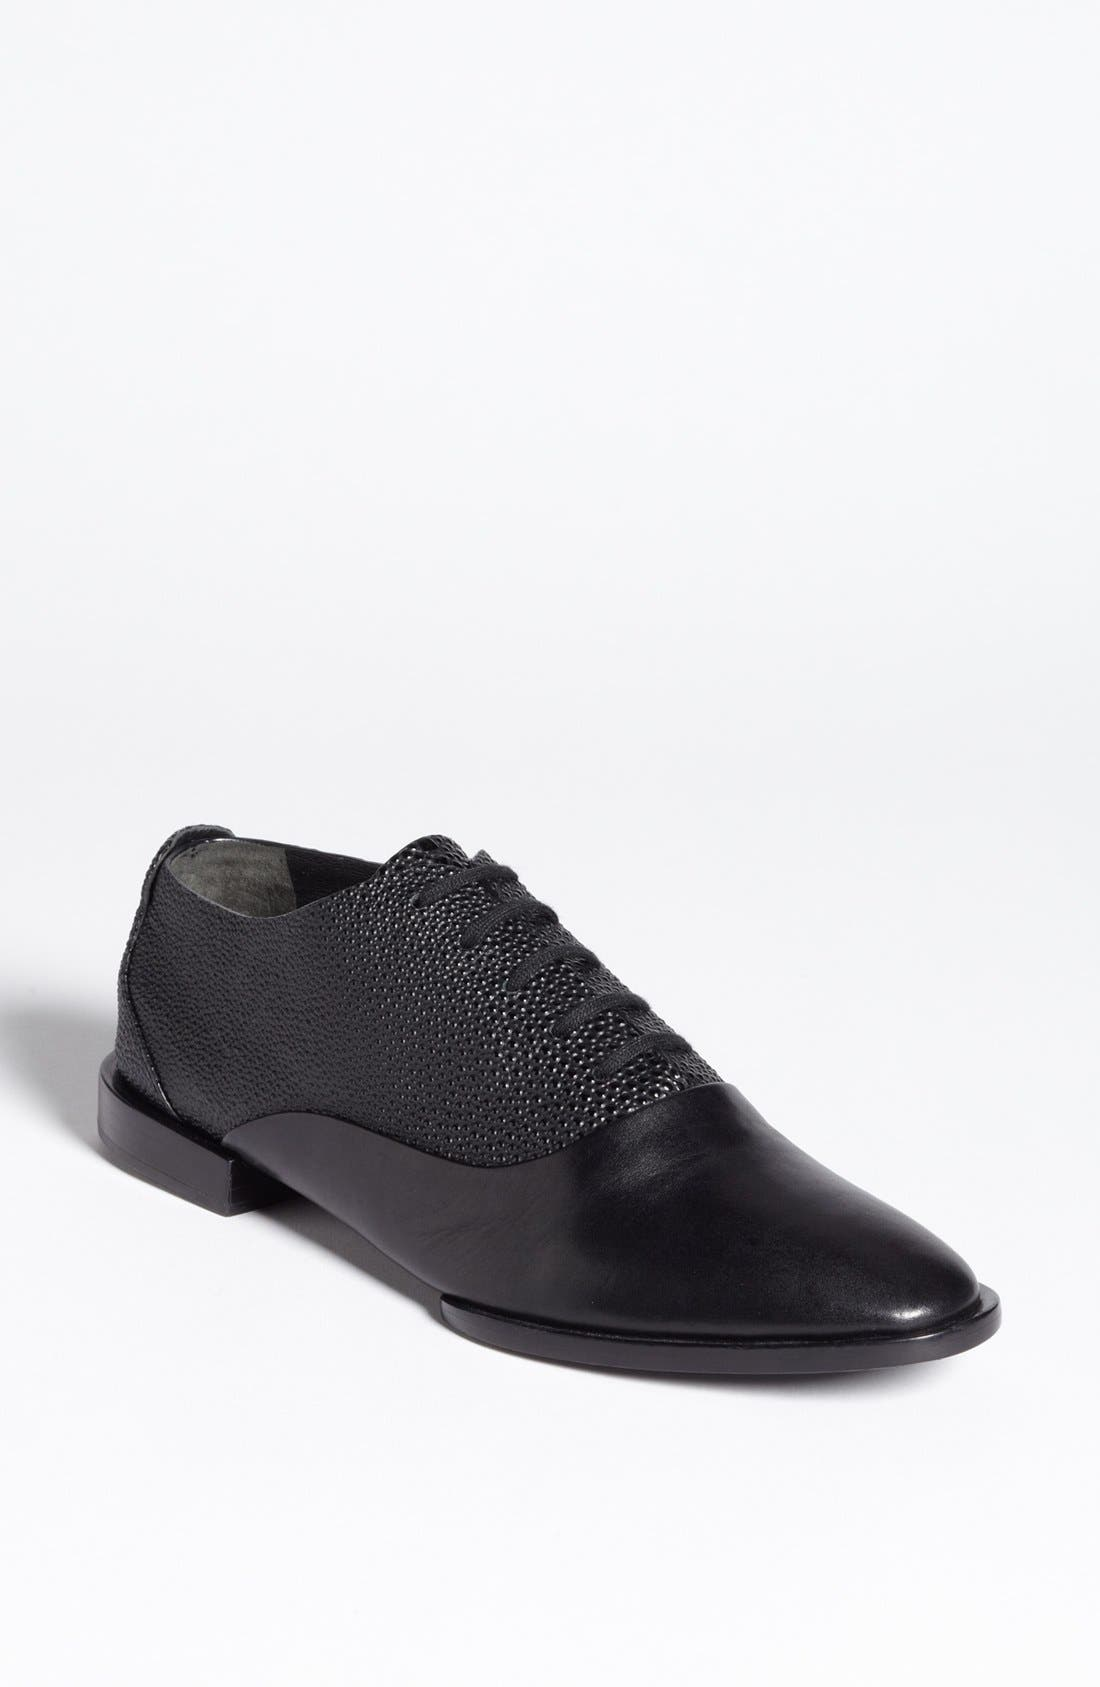 Alternate Image 1 Selected - Alexander Wang 'Ingrid' Oxford